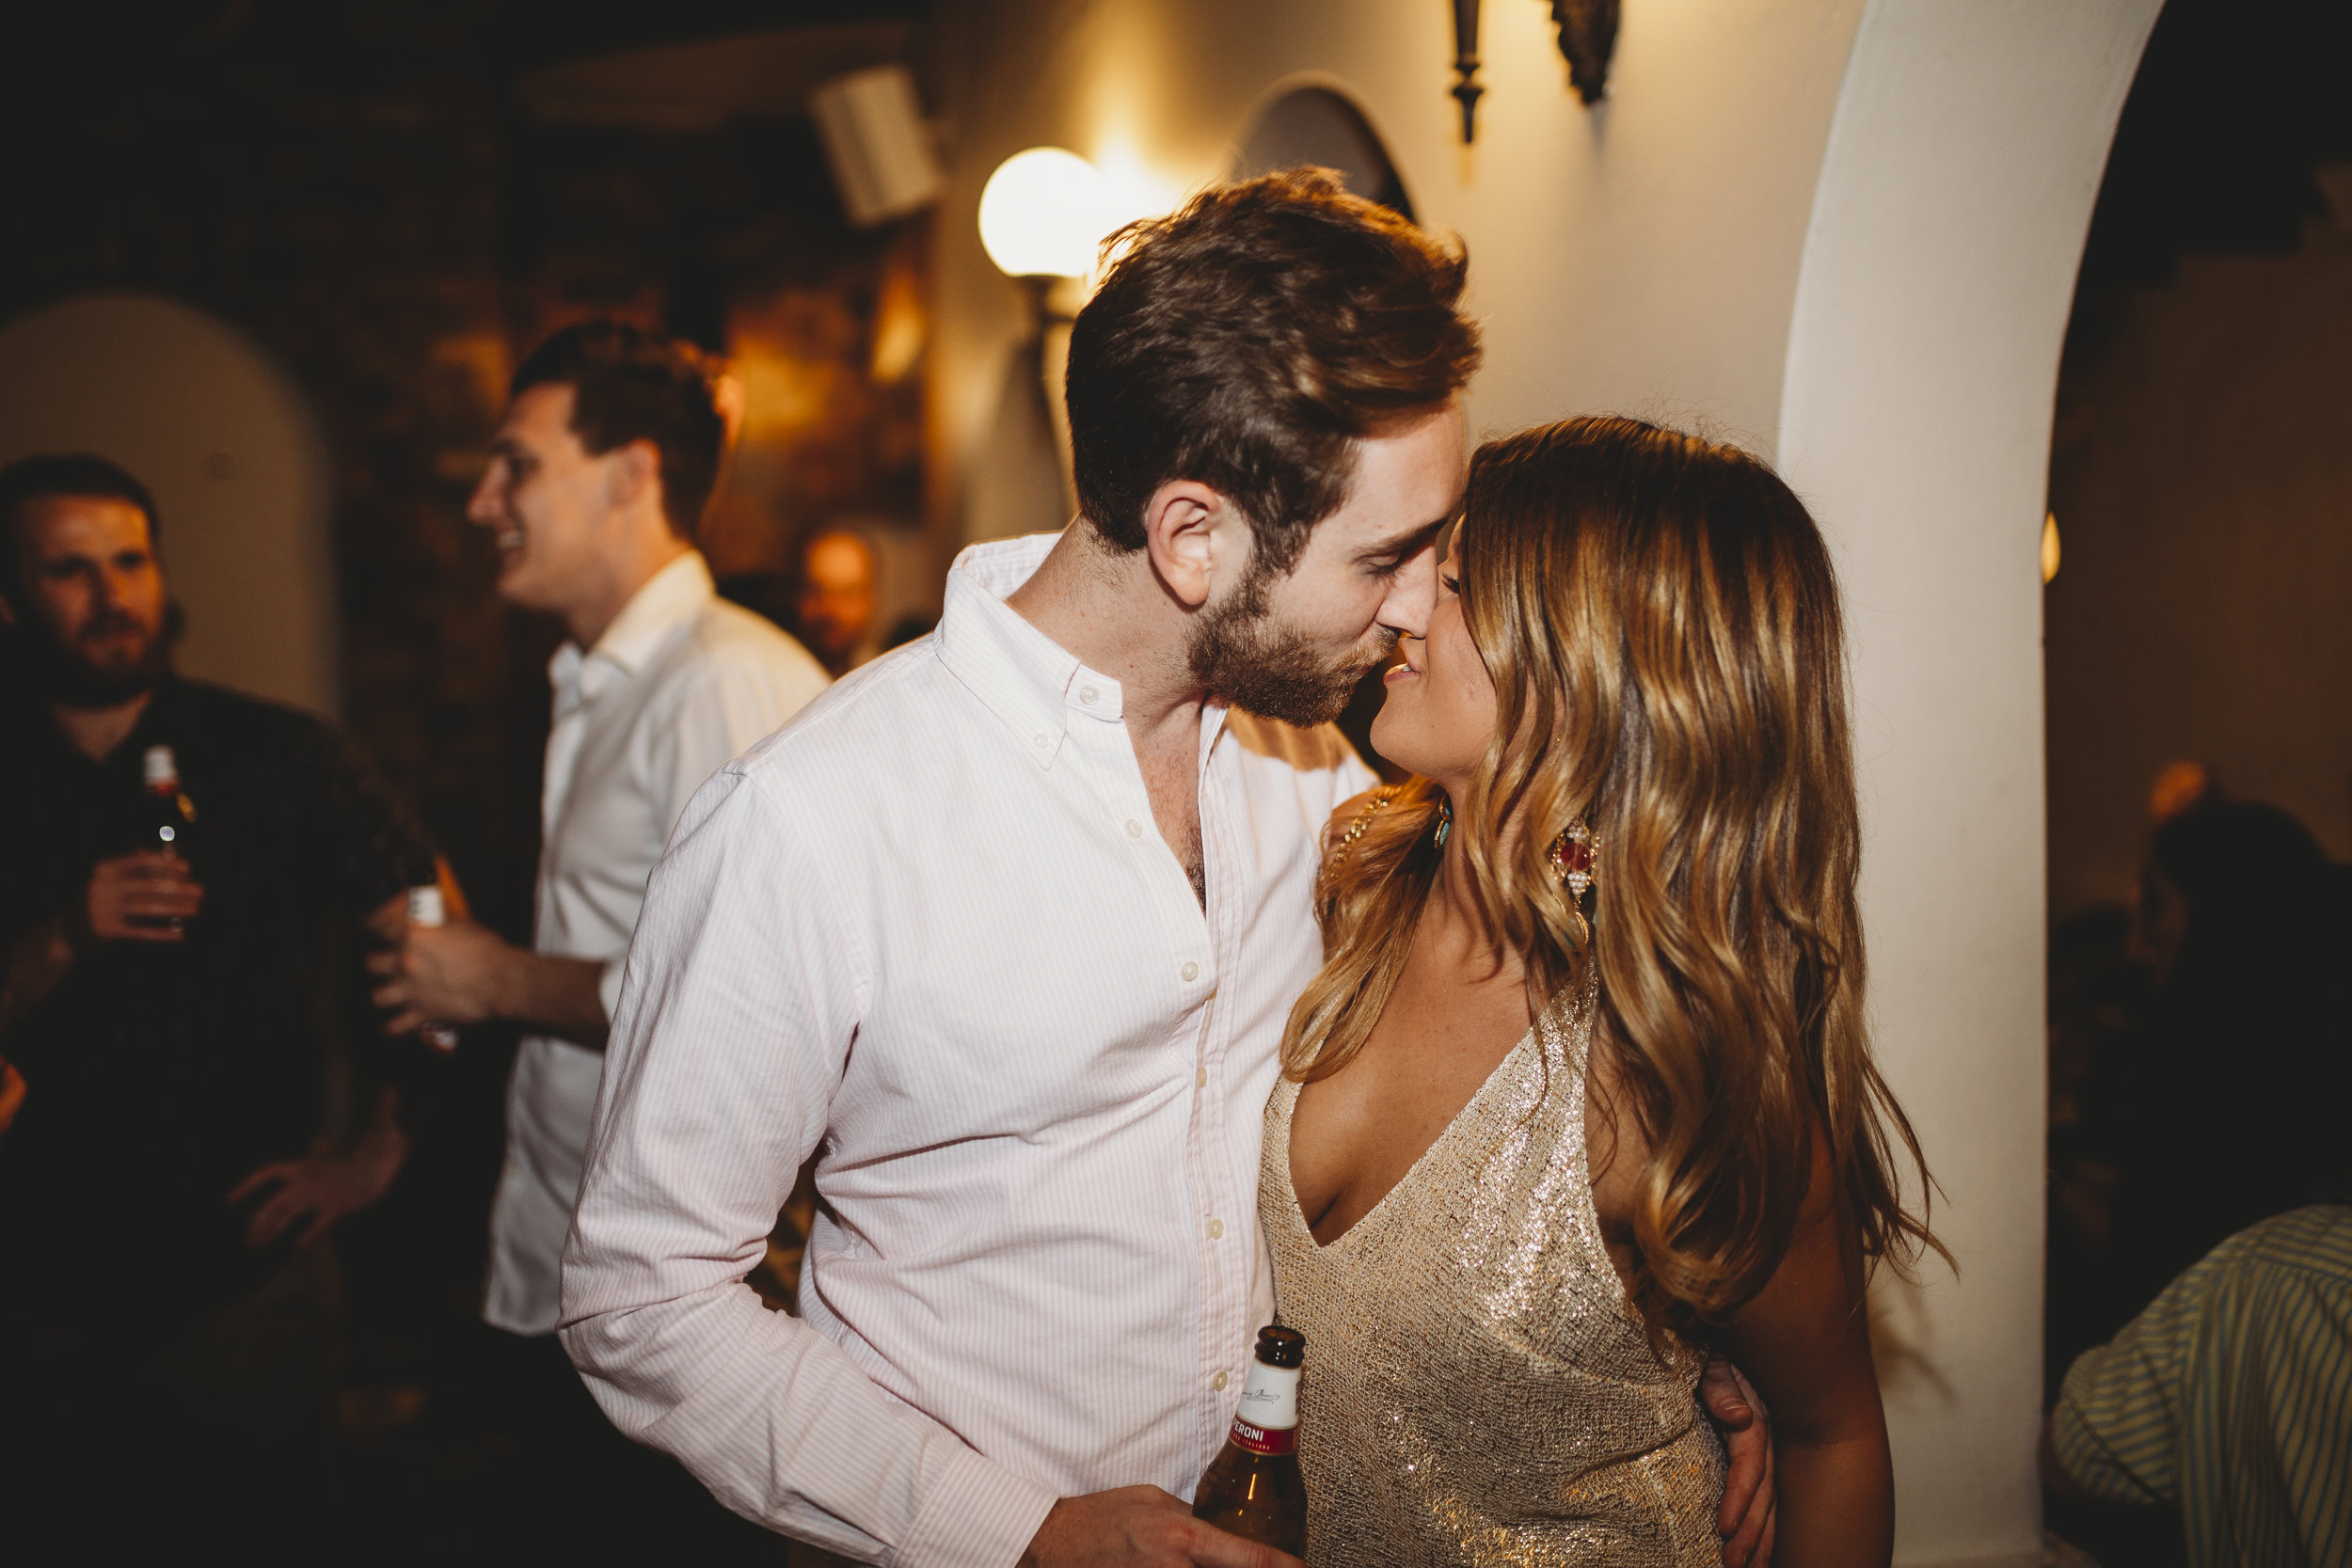 Young couple kissing at party